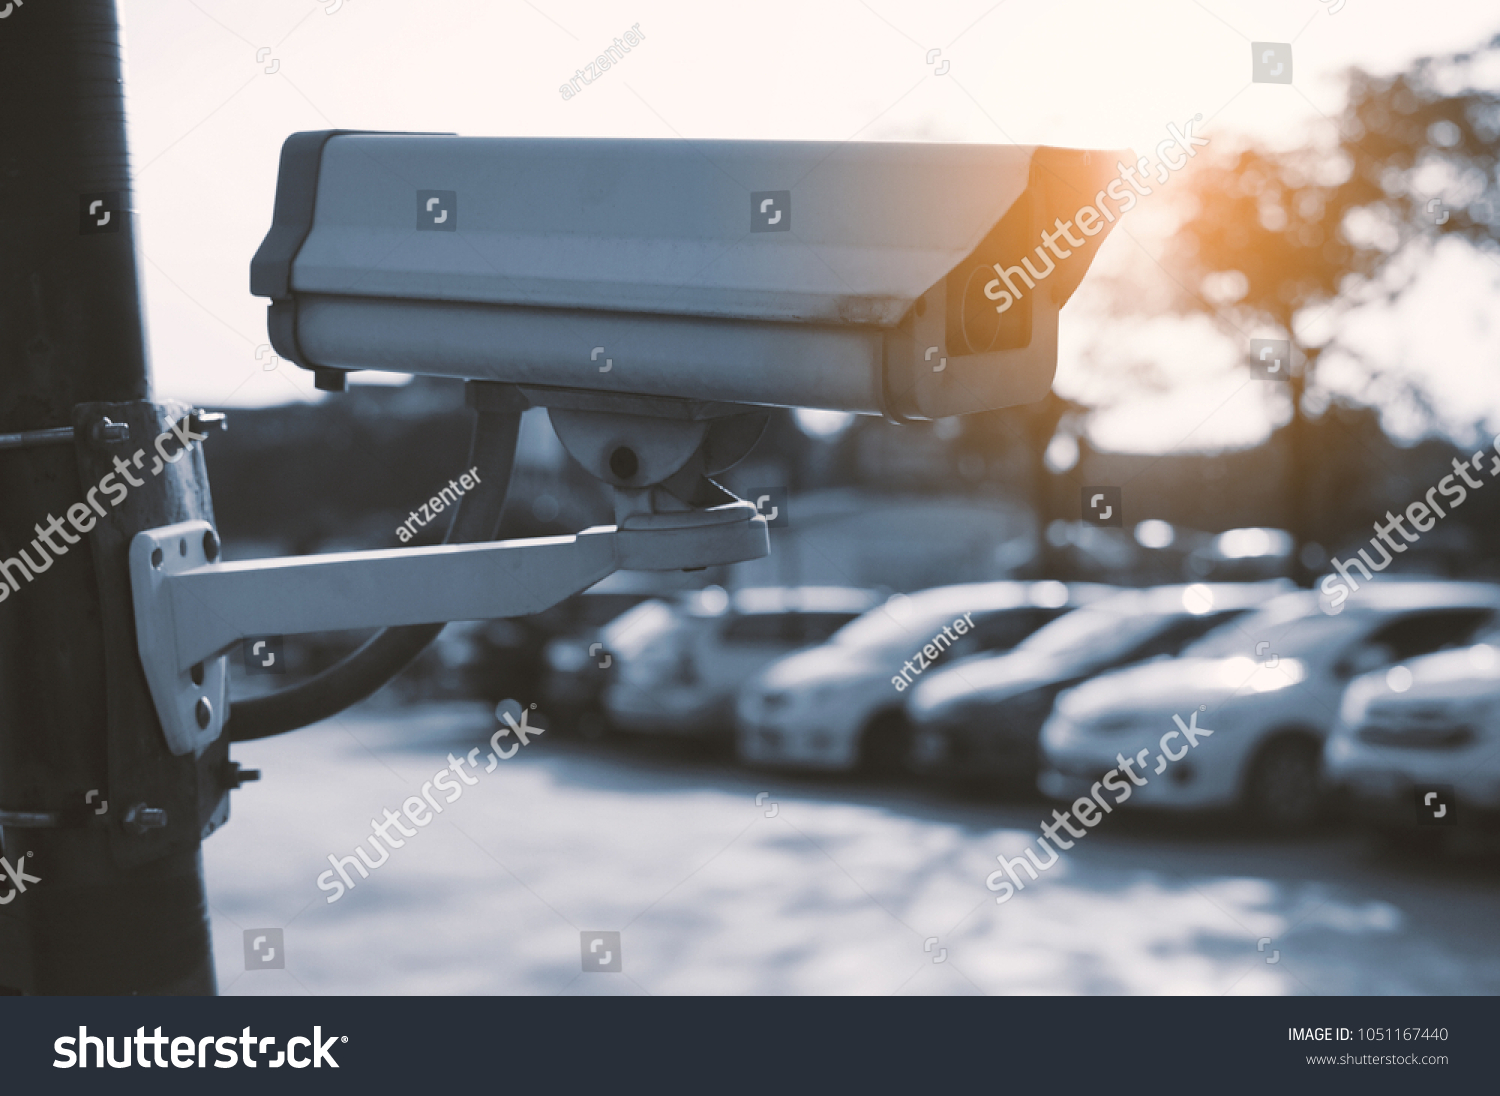 Cctv Security Camera Outdoor Car Park Stock Photo (Edit Now) 1051167440